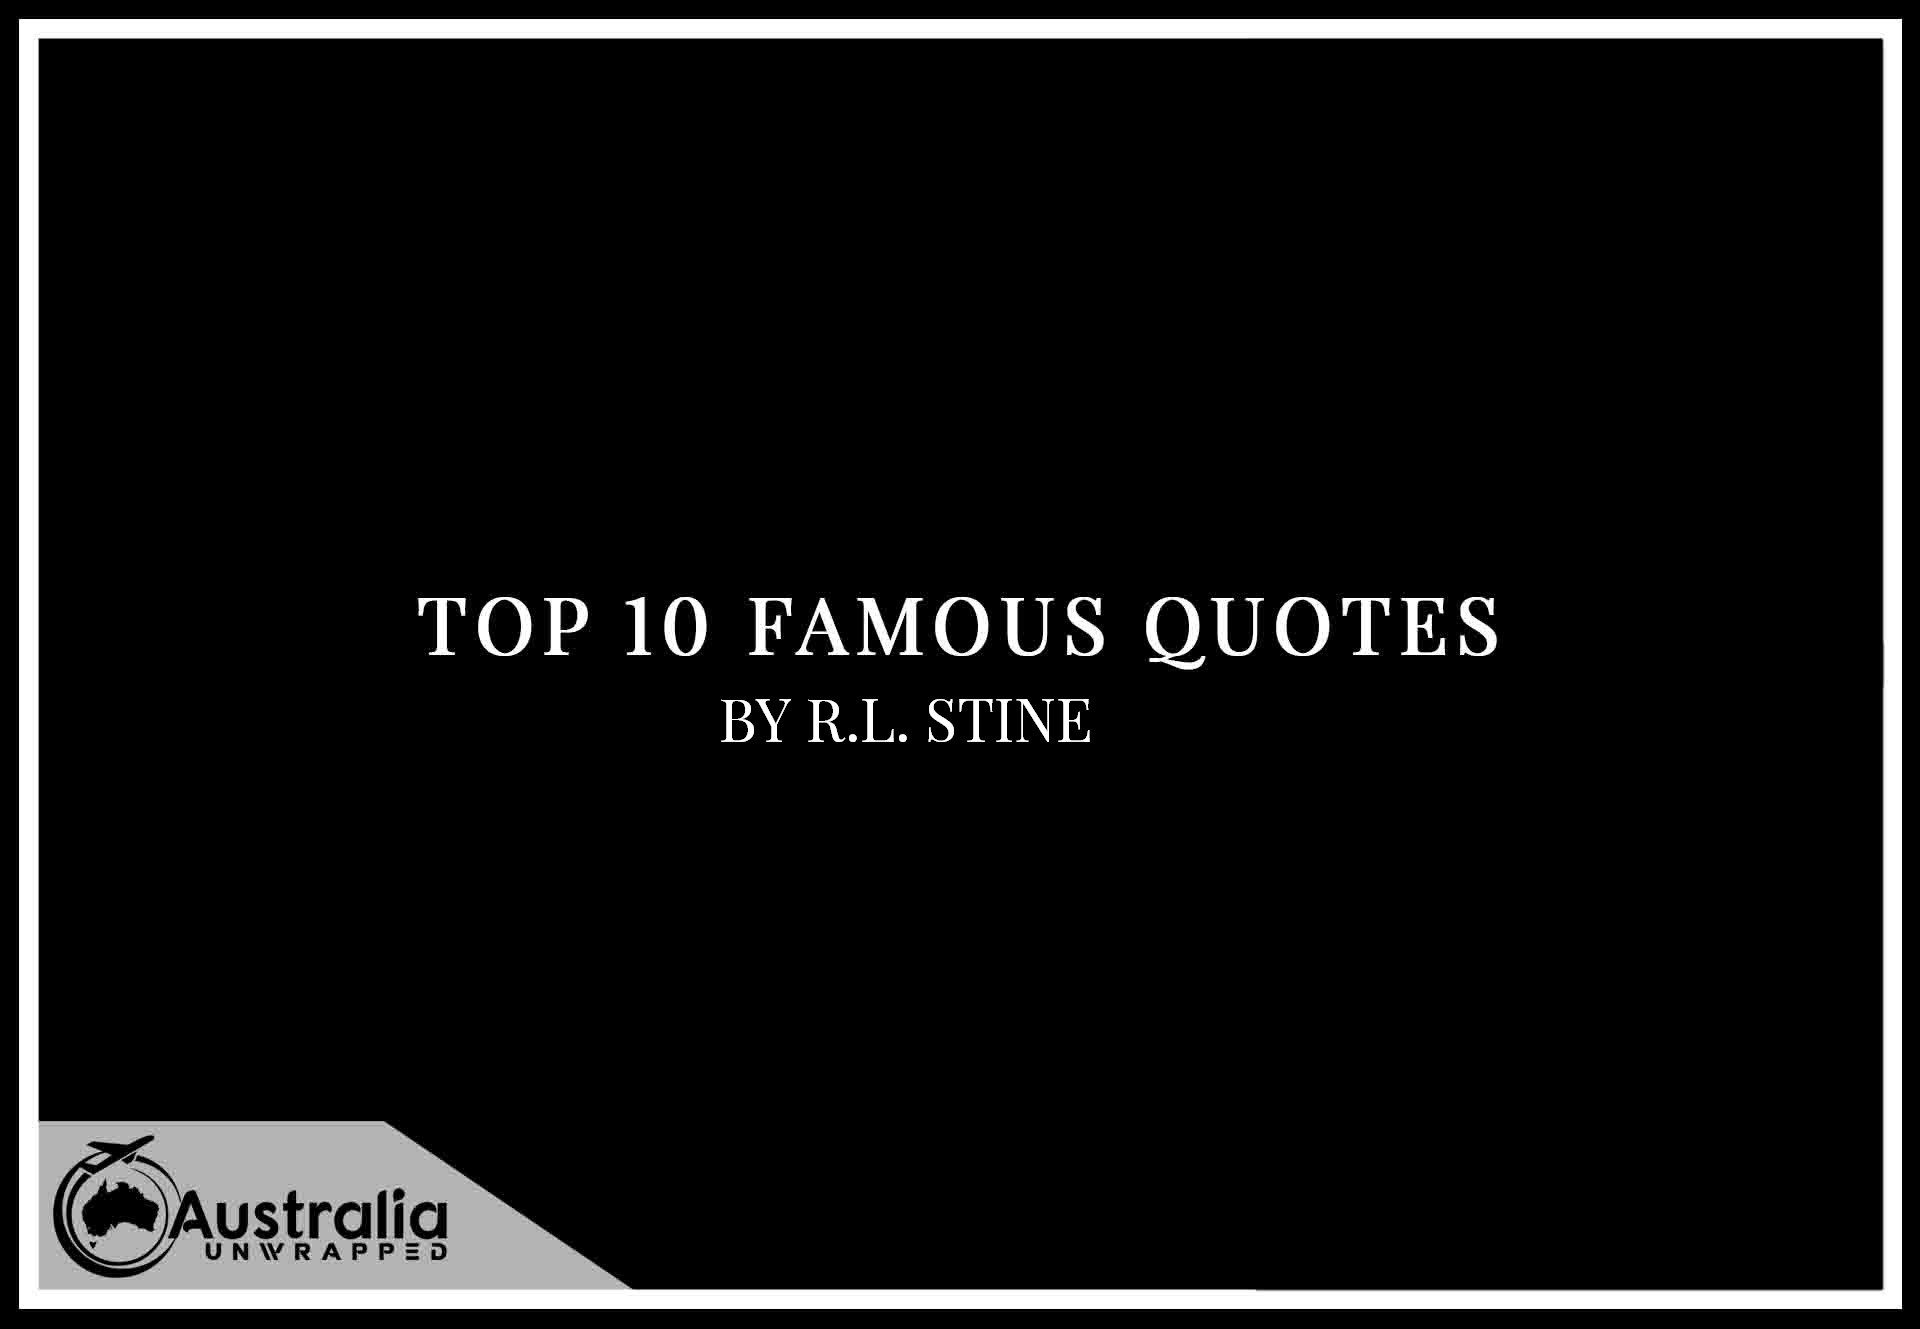 Top 10 Famous Quotes by Author R.L. Stine